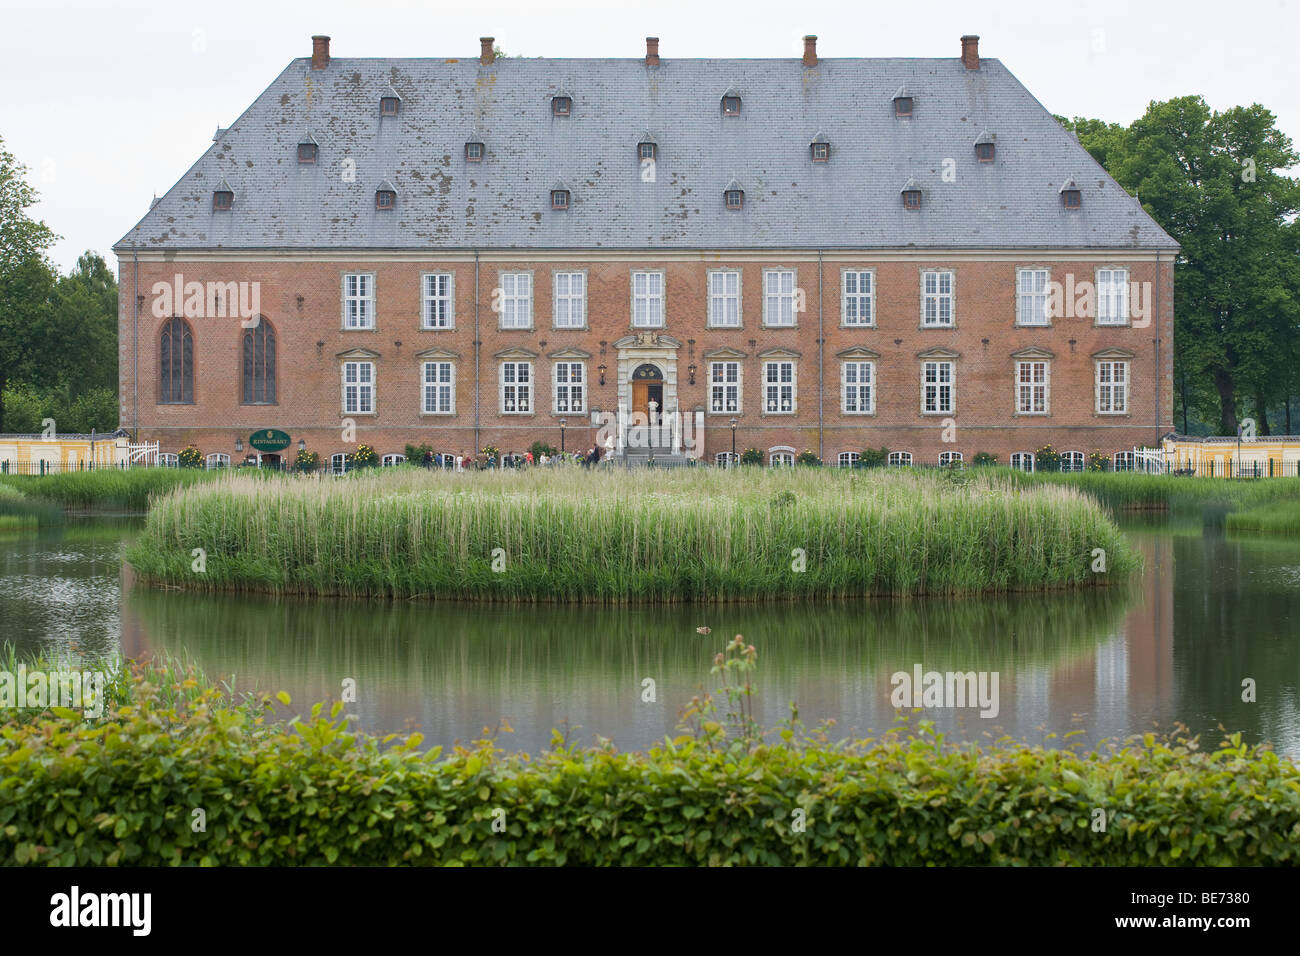 Guests arrive at  the Manor House at  Vlademars Slot. - Stock Image